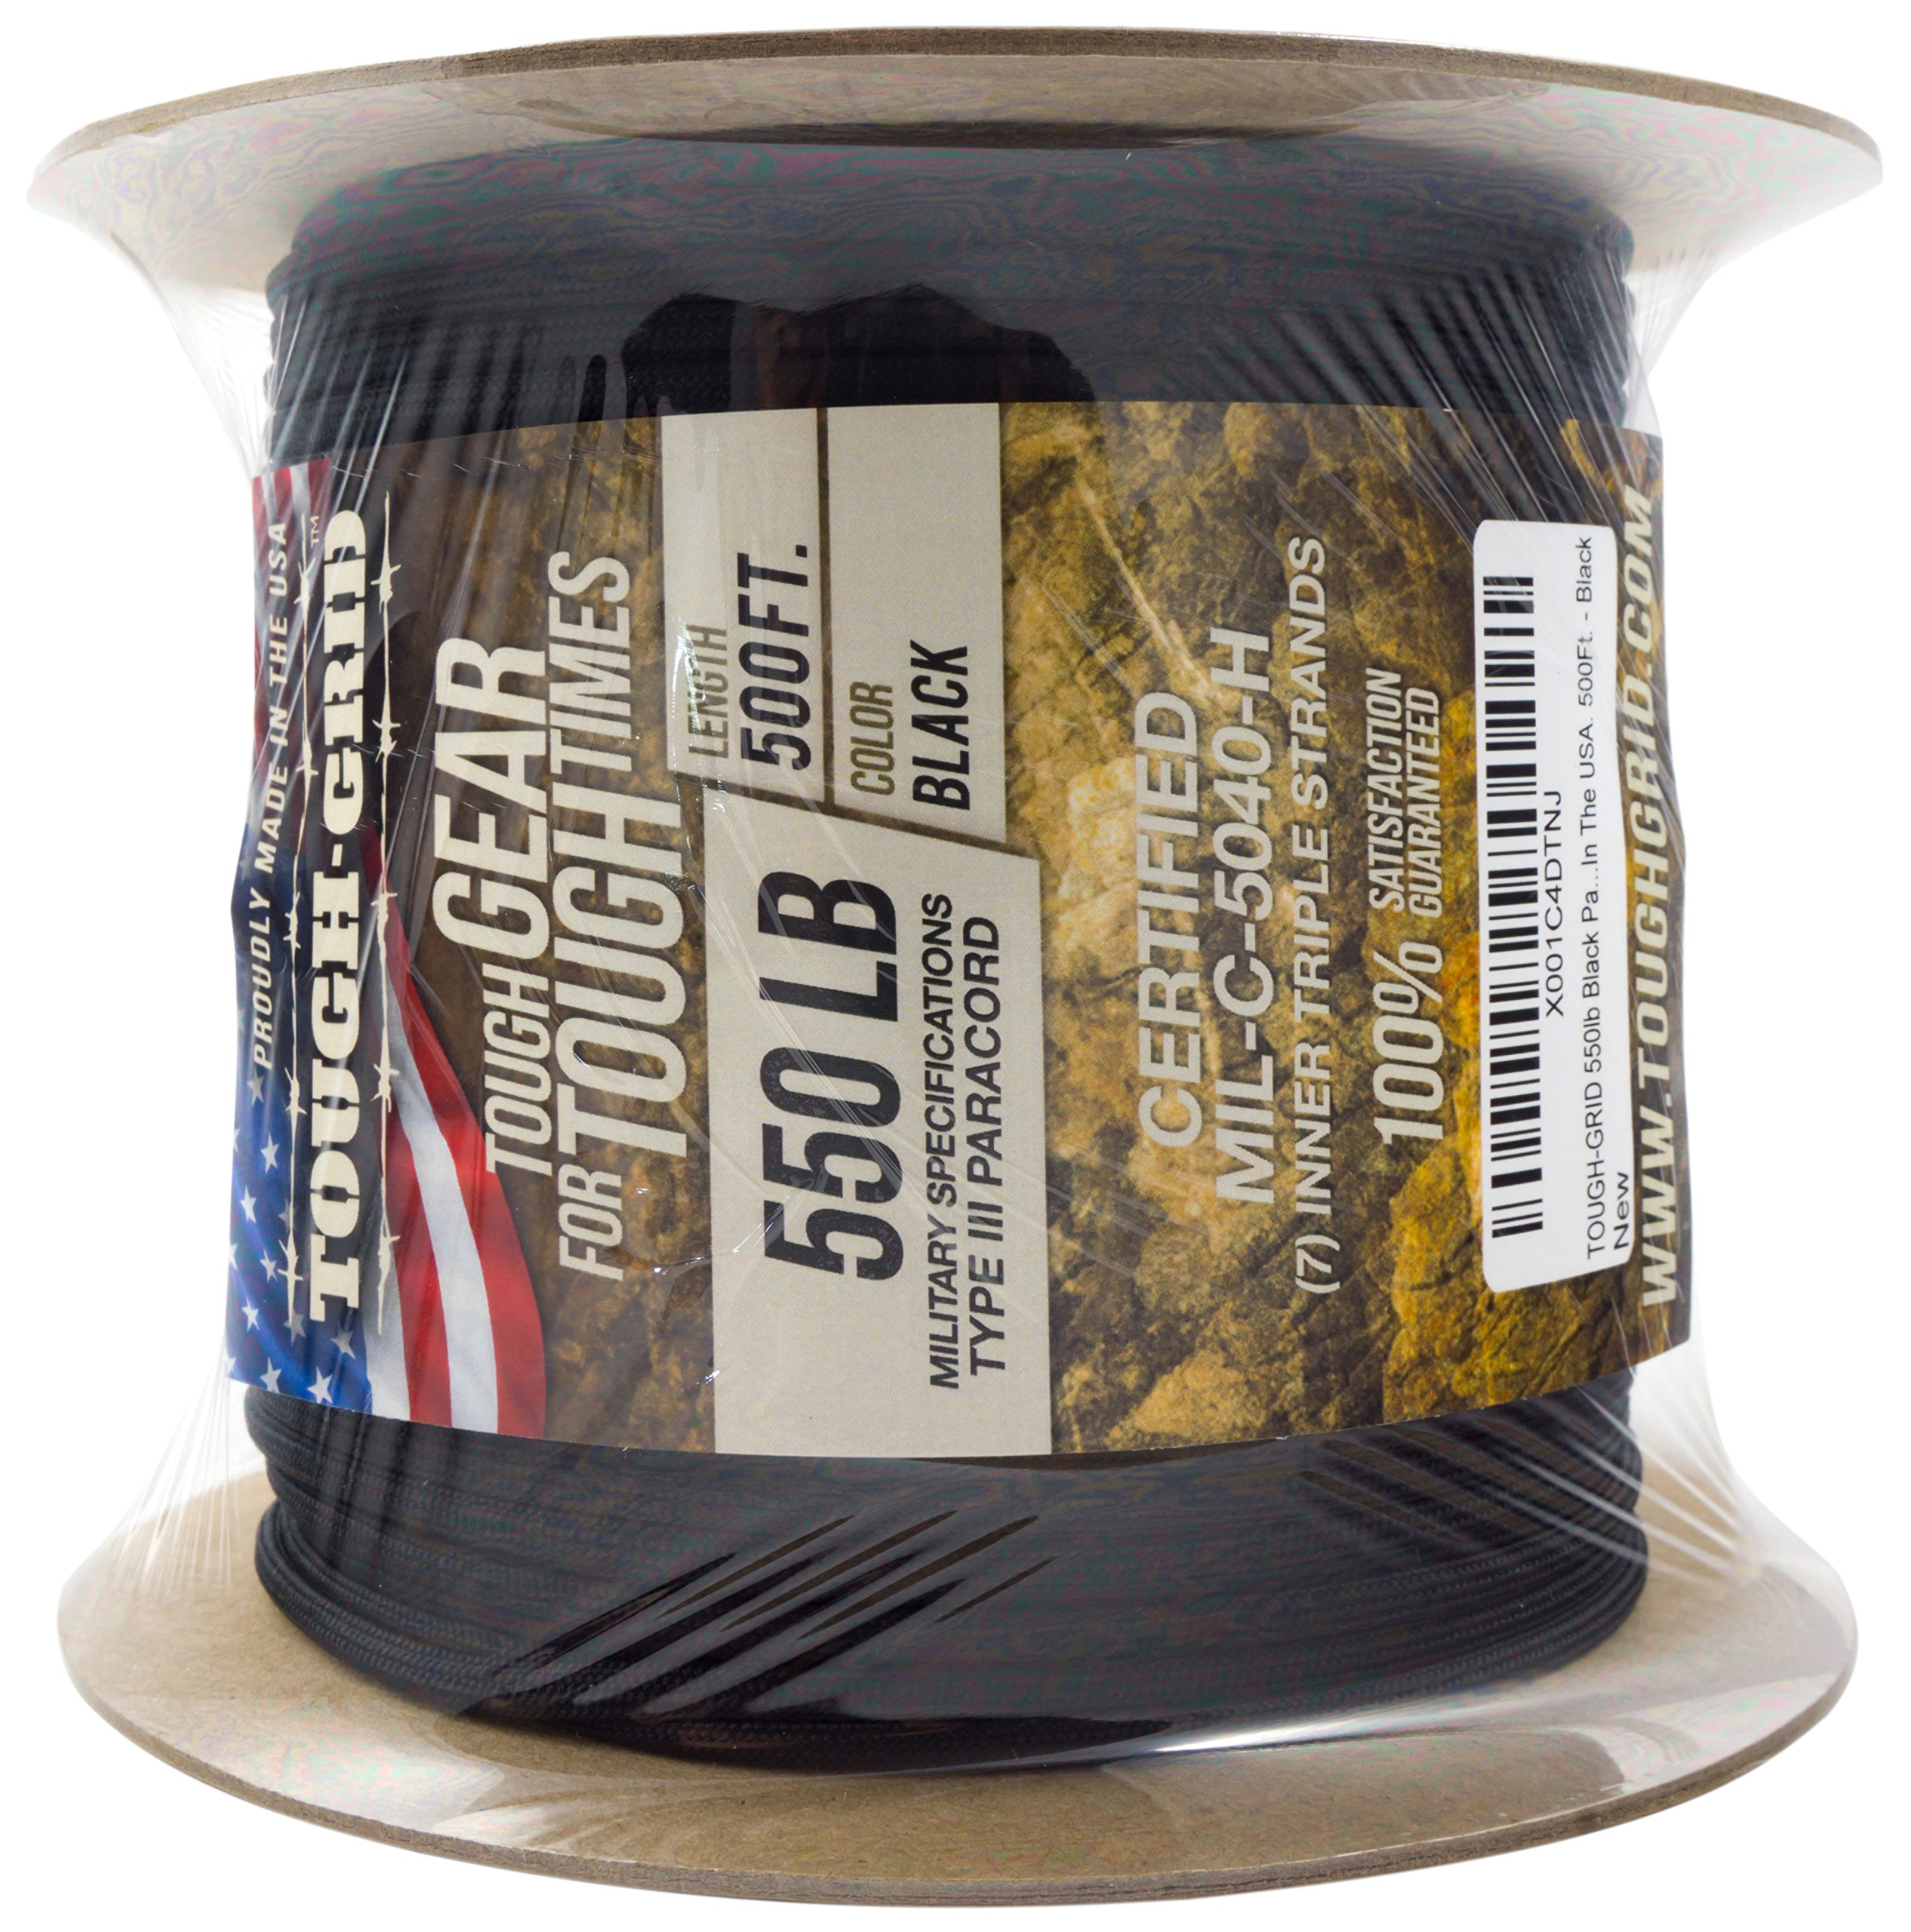 TOUGH-GRID 550lb Black Paracord/Parachute Cord - 100% Nylon Genuine Mil-Spec Type III Paracord Used by The US Military - Great for Bracelets and Lanyards - Made in The USA. 50Ft. - Black by TOUGH-GRID (Image #9)